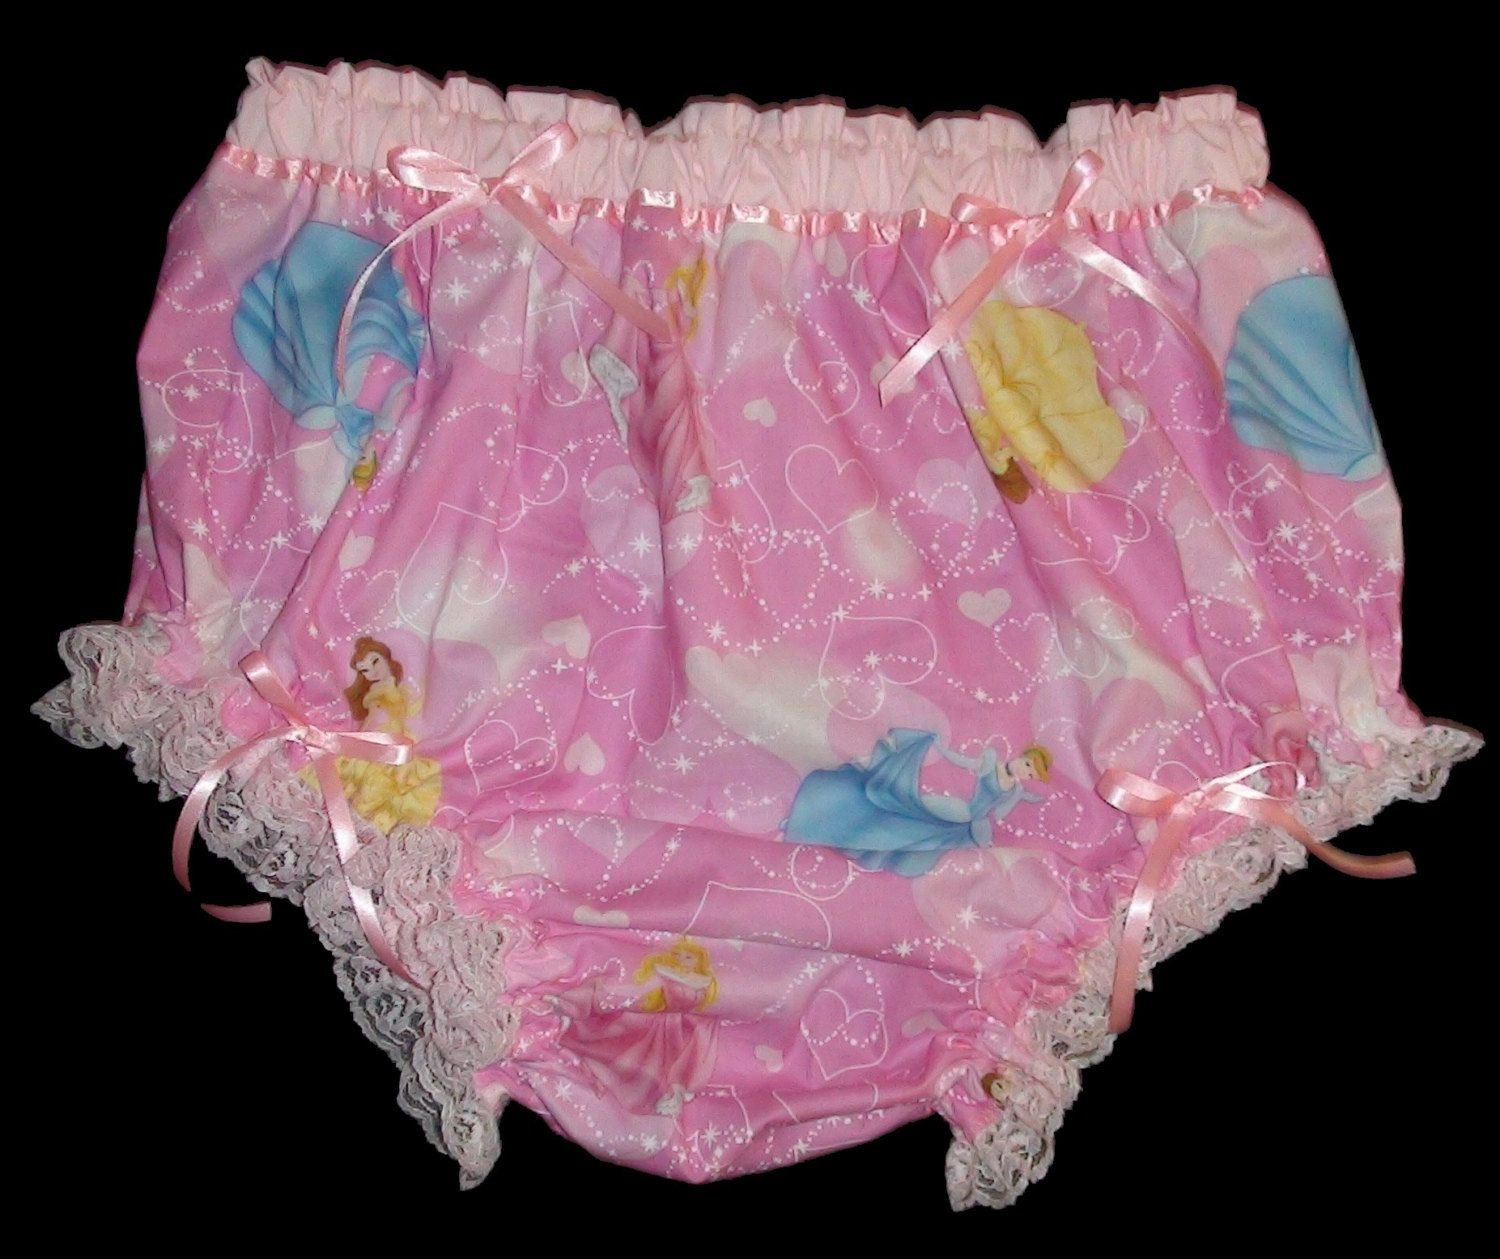 Adult bABy Sissy Diaper cover Pink Princess Men by